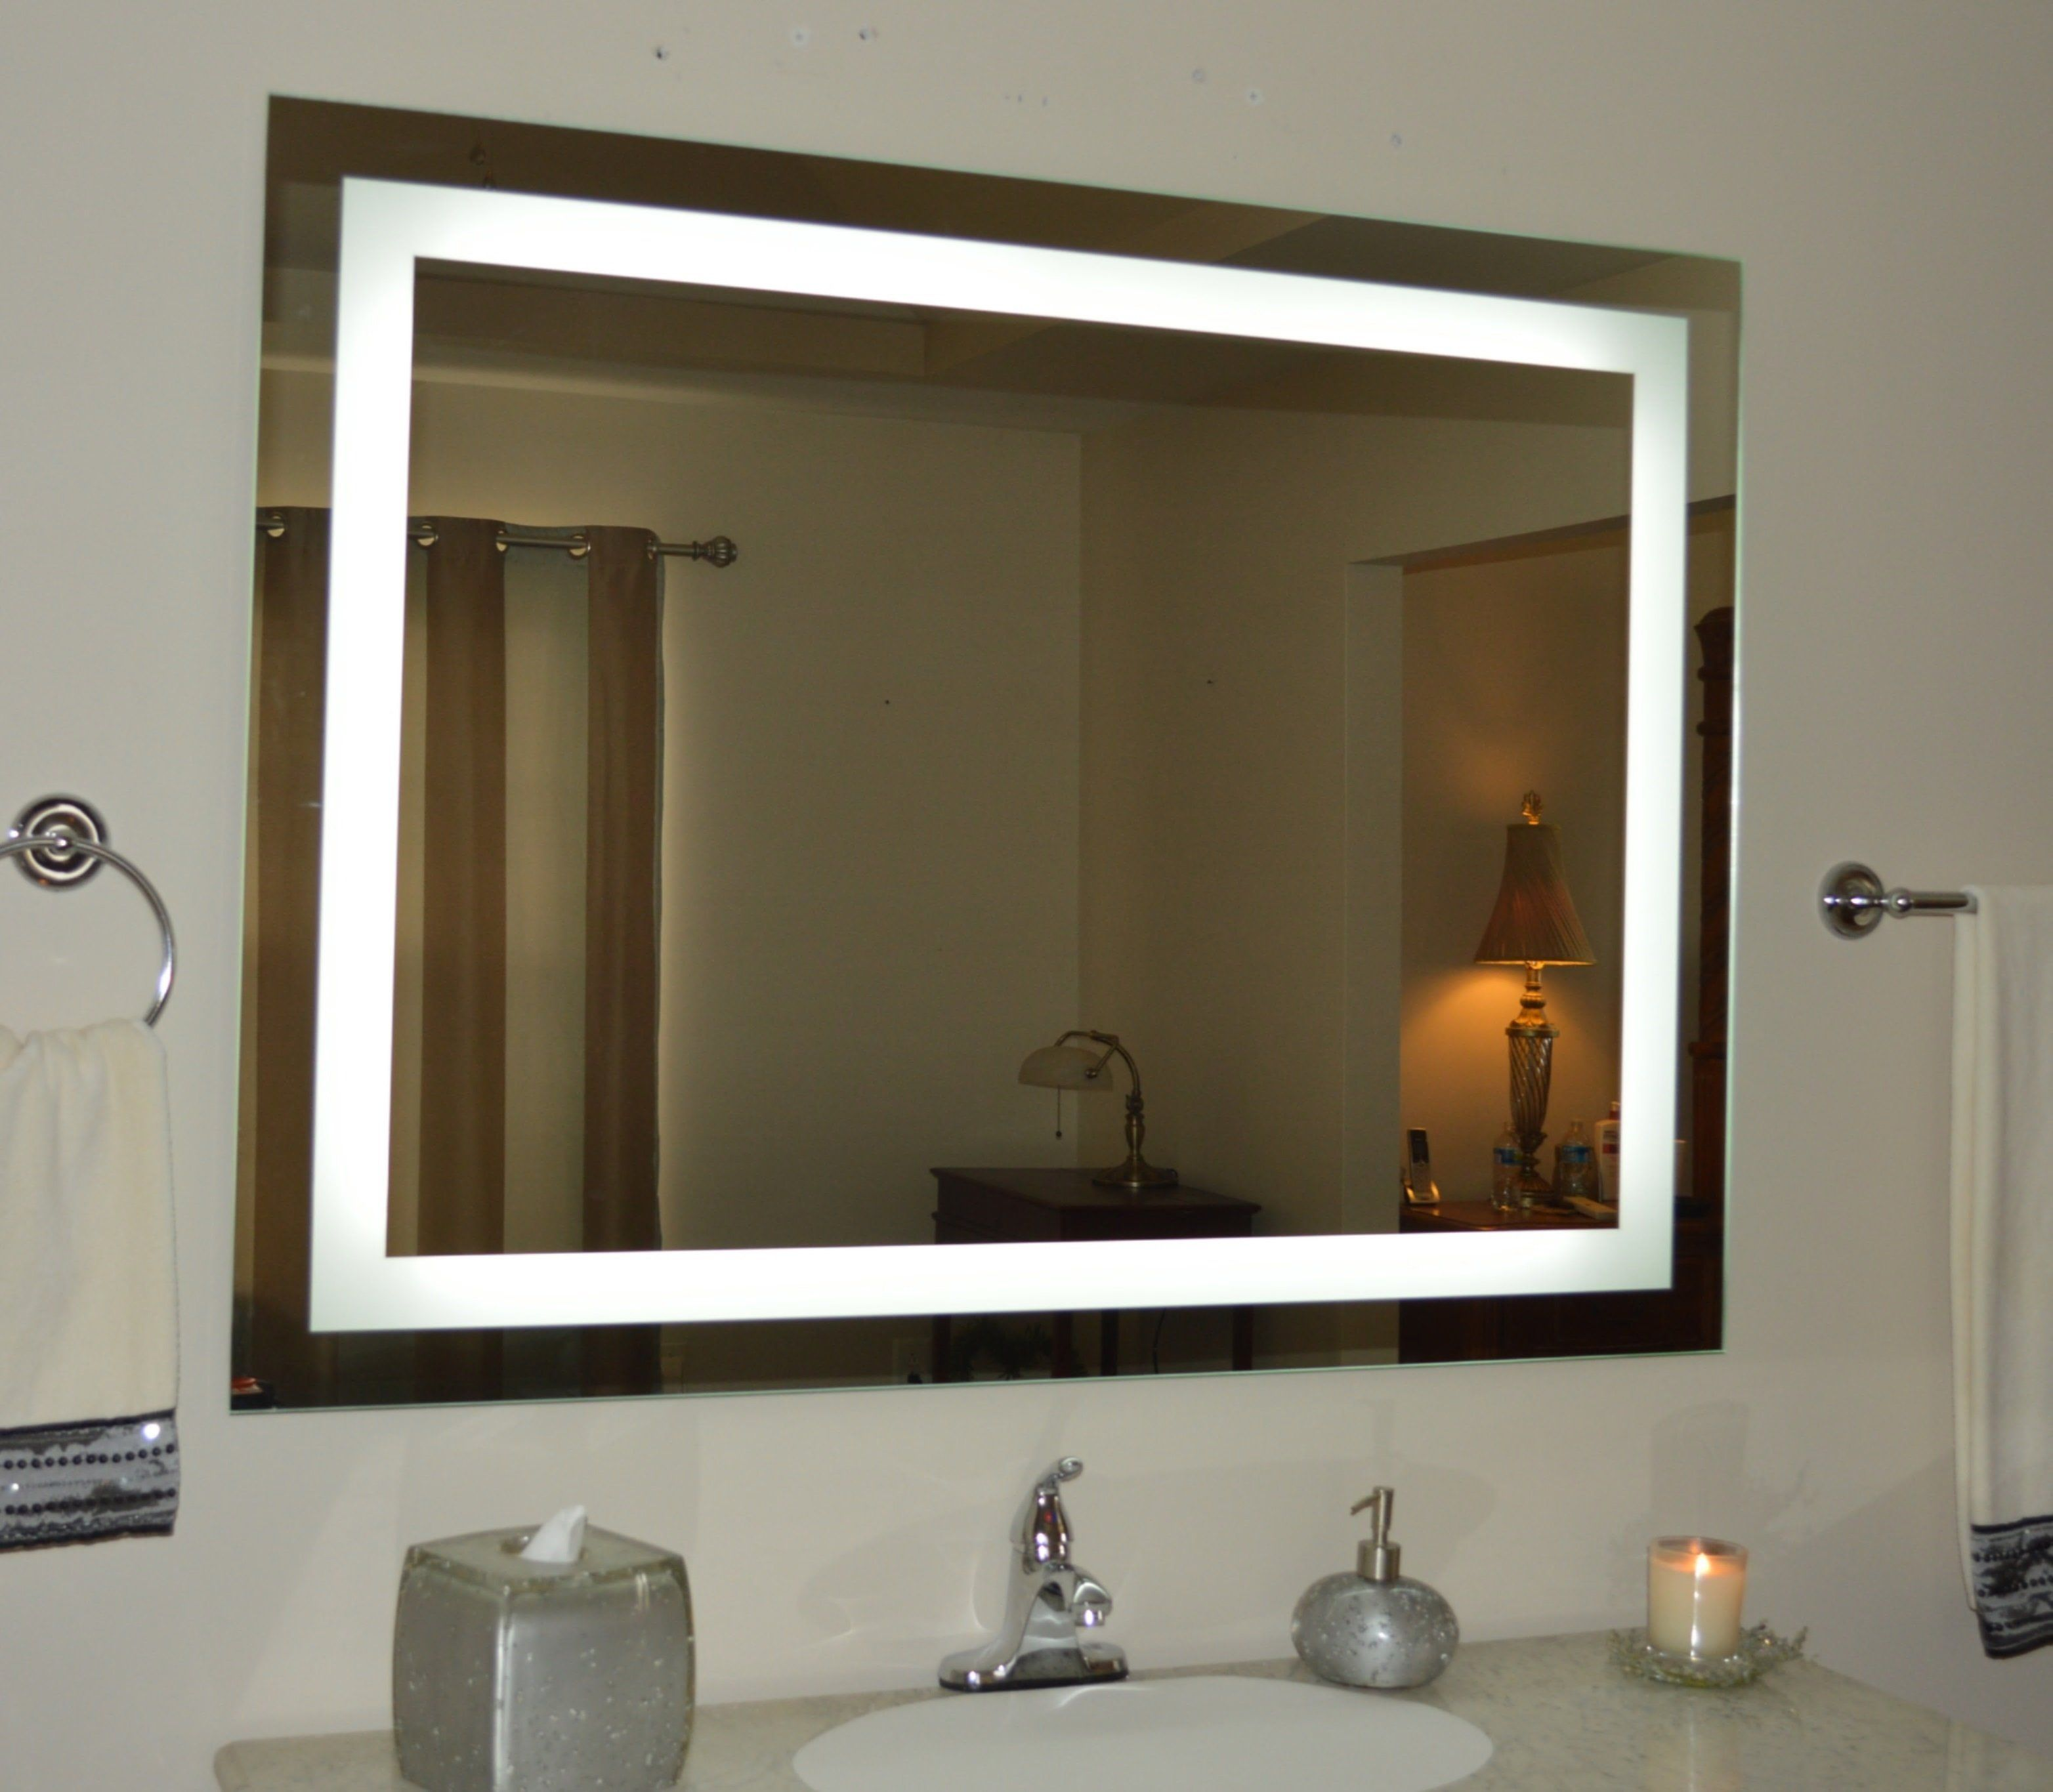 Front Lighted Led Bathroom Vanity Mirror 48 X 32 Rectangular